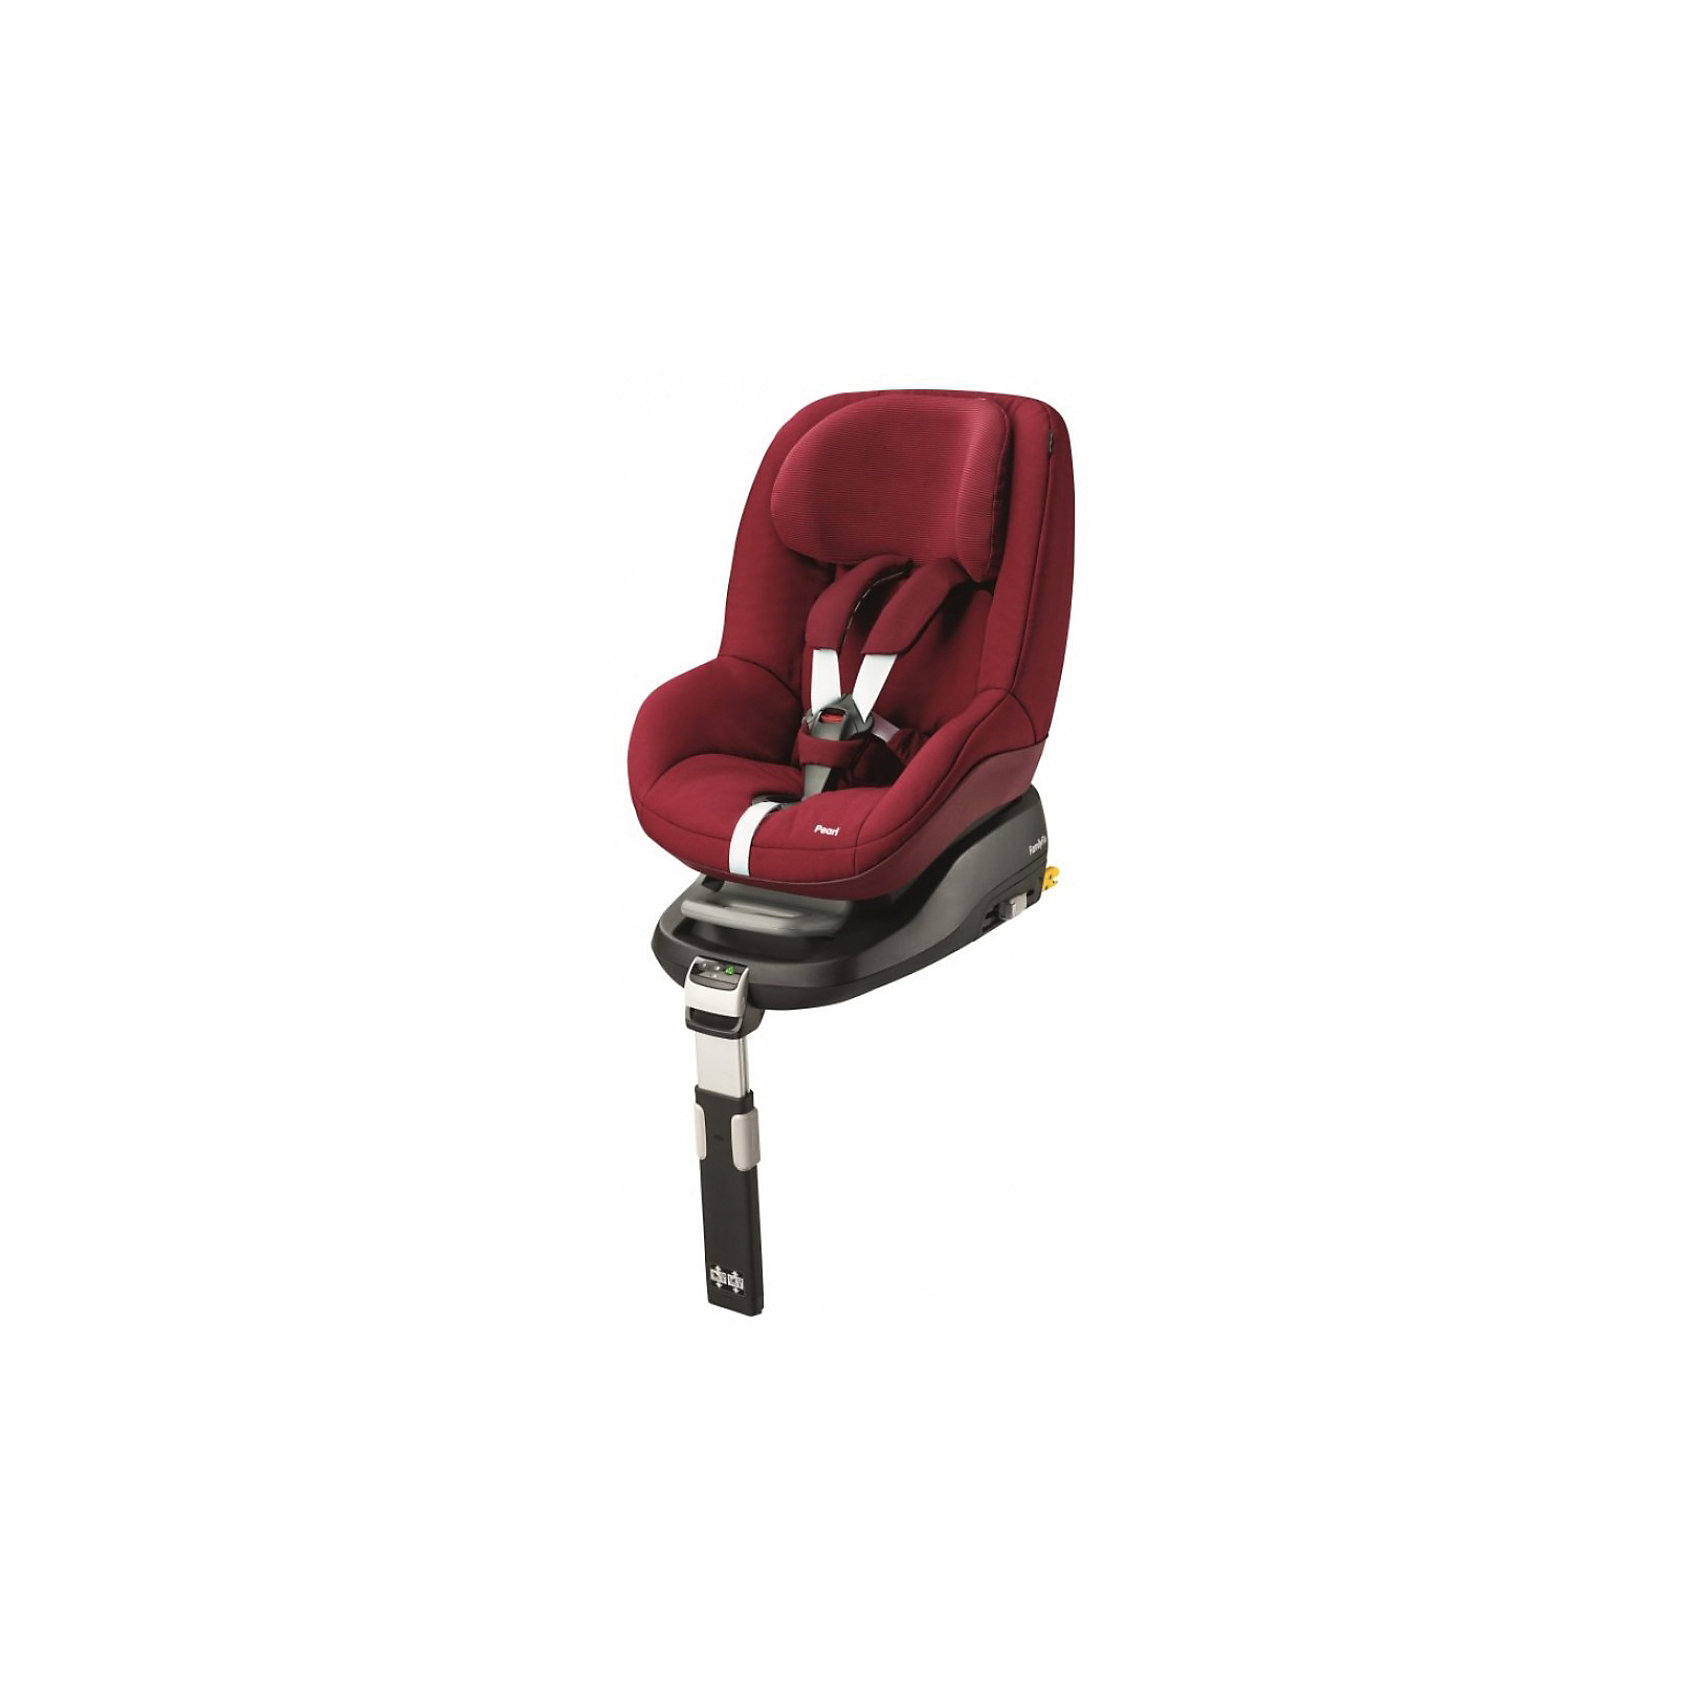 Автокресло Pearl 9-18 кг., Maxi-Cosi, Robin Red